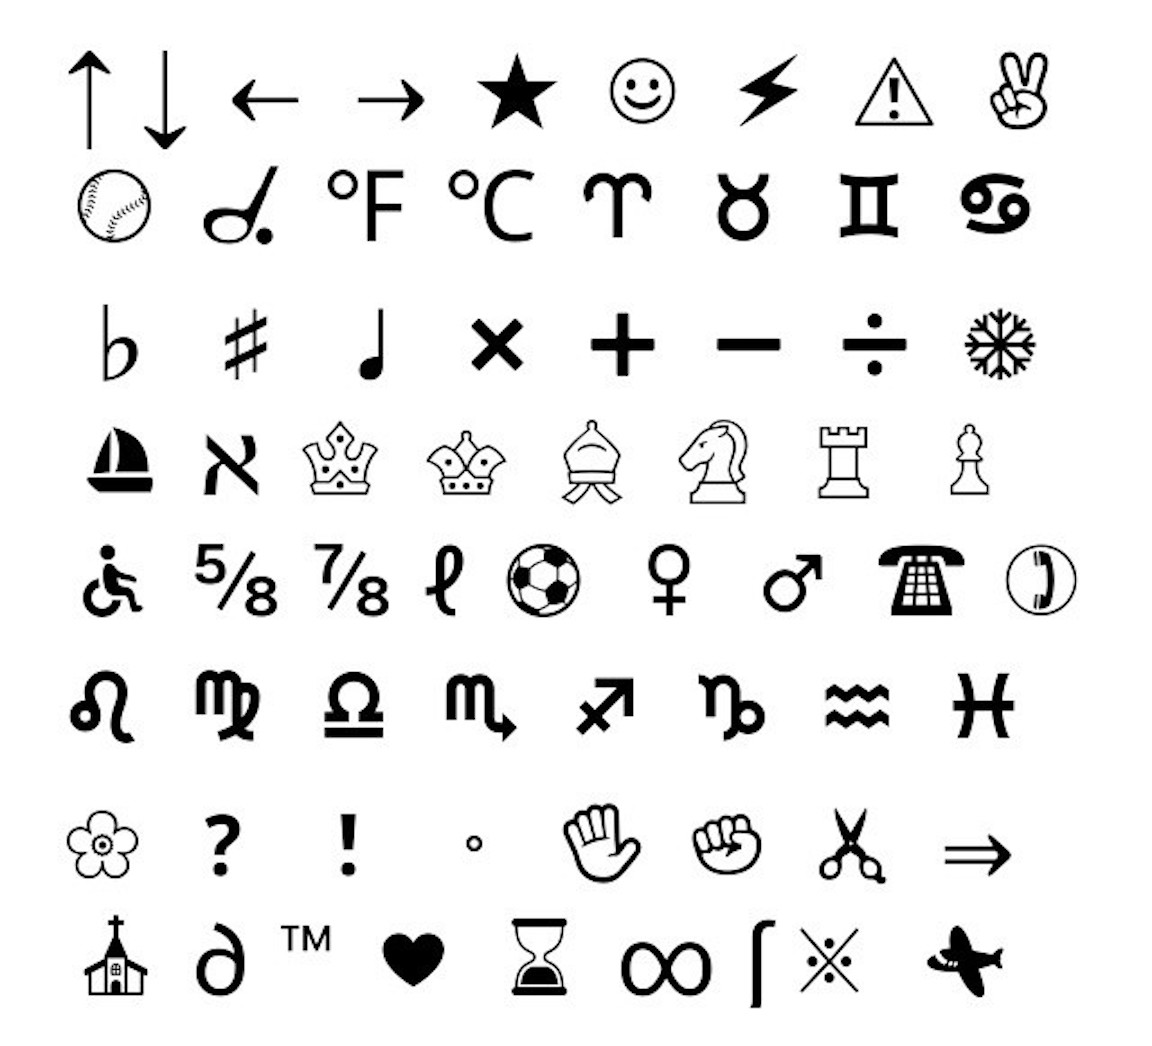 Keyboard Symbols, Clipart, And Other Free Printable Design